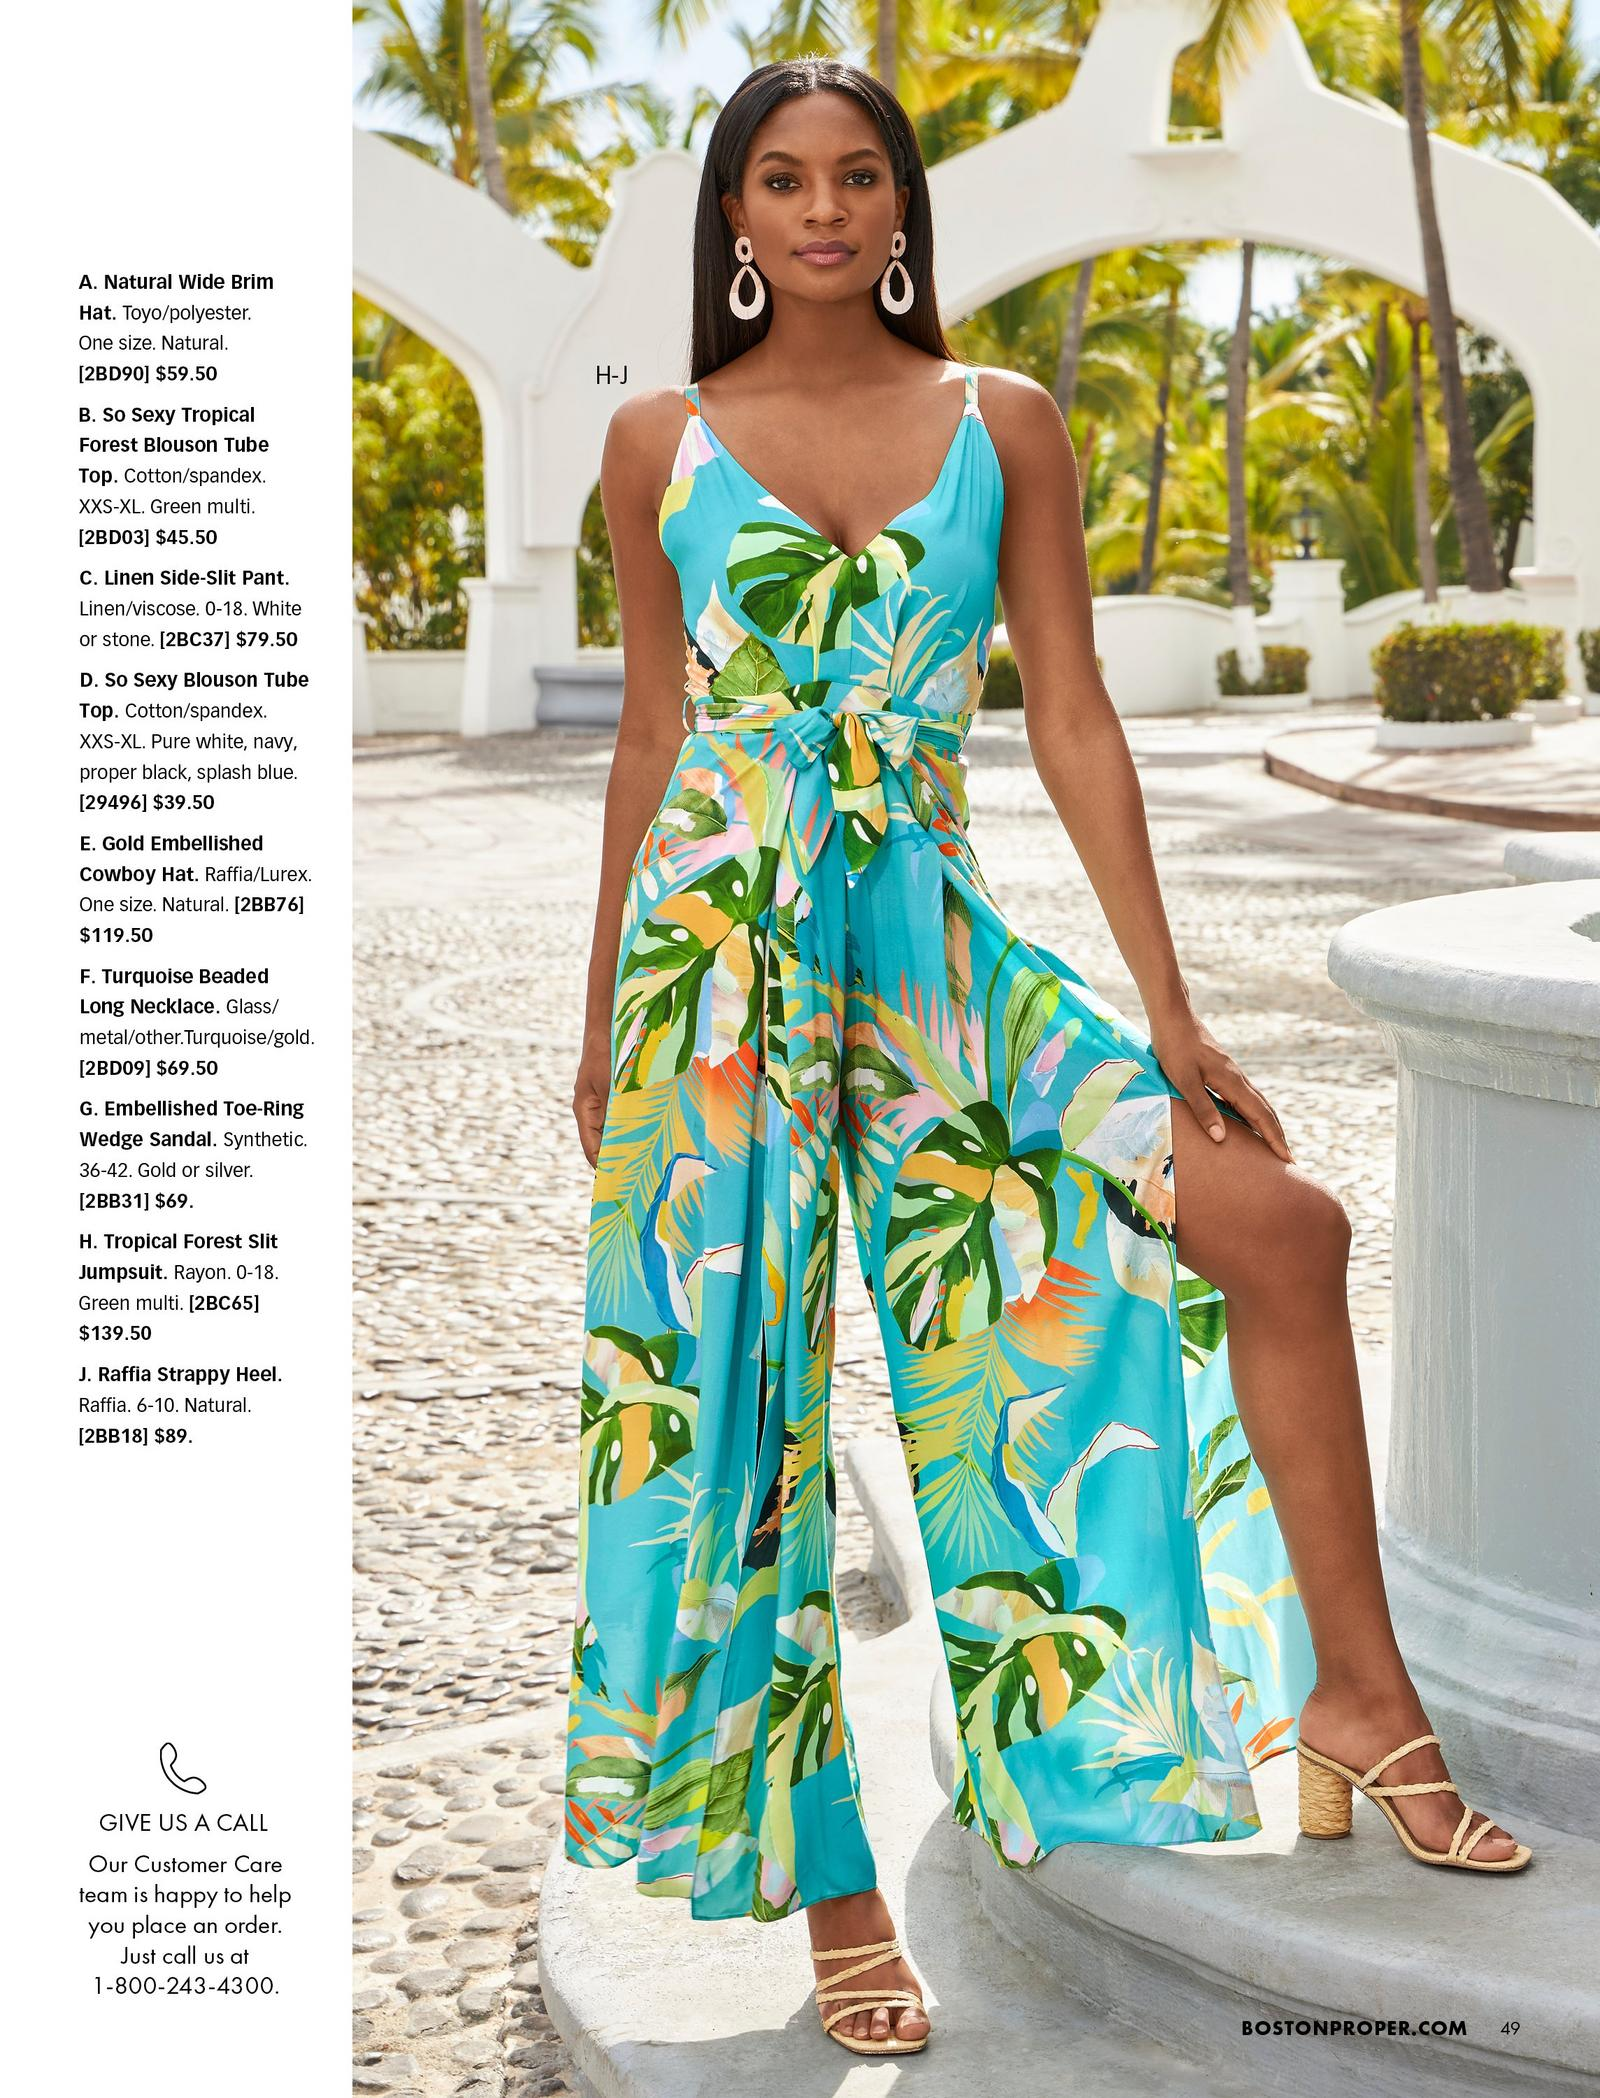 model wearing a tropical print side-slit sleeveless jumpsuit with a tie-waist and raffia strappy heels.